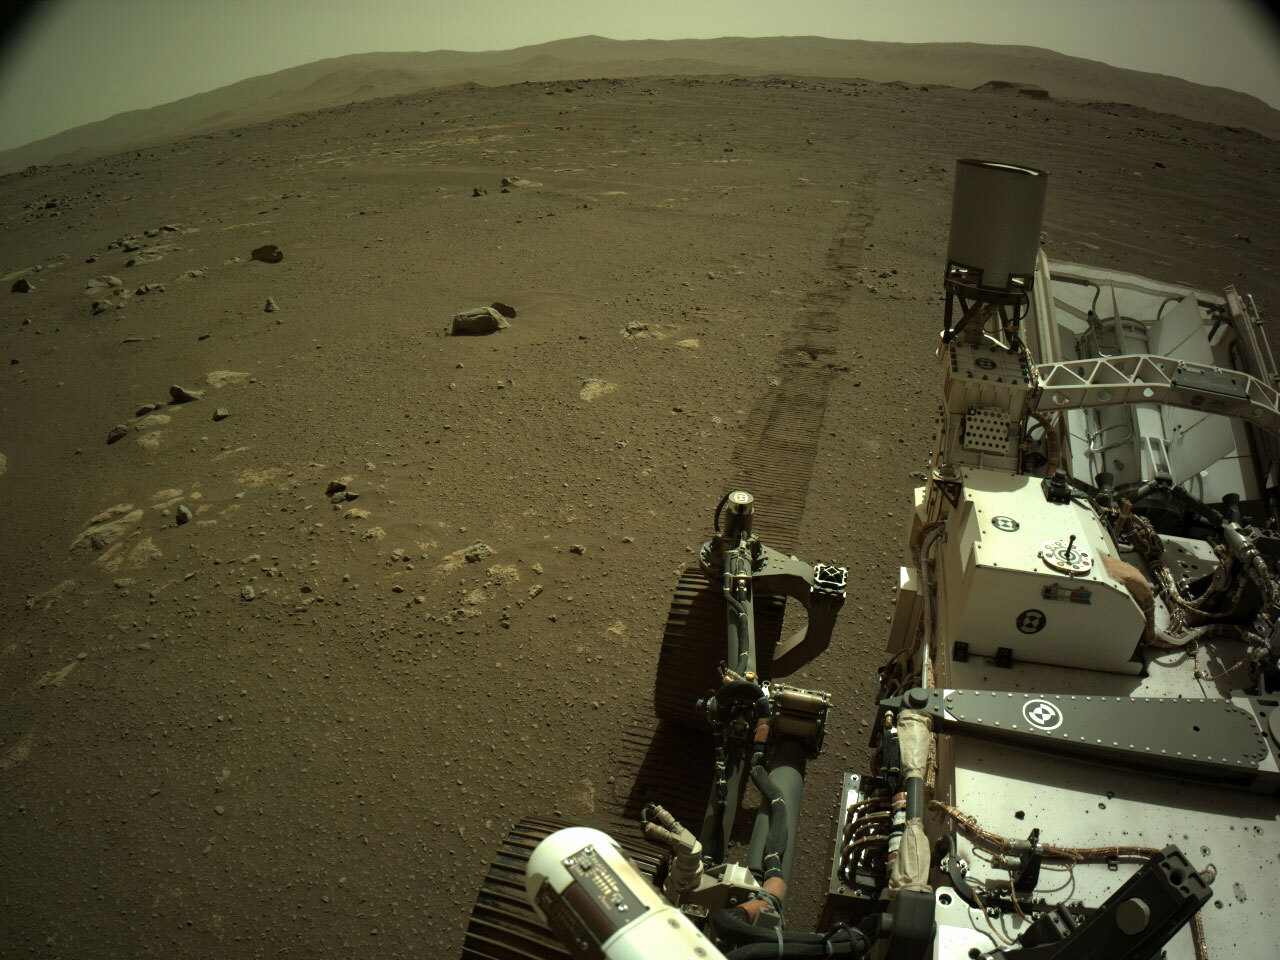 NASA's Mars Perseverance rover acquired this image using its onboard Left Navigation Camera.